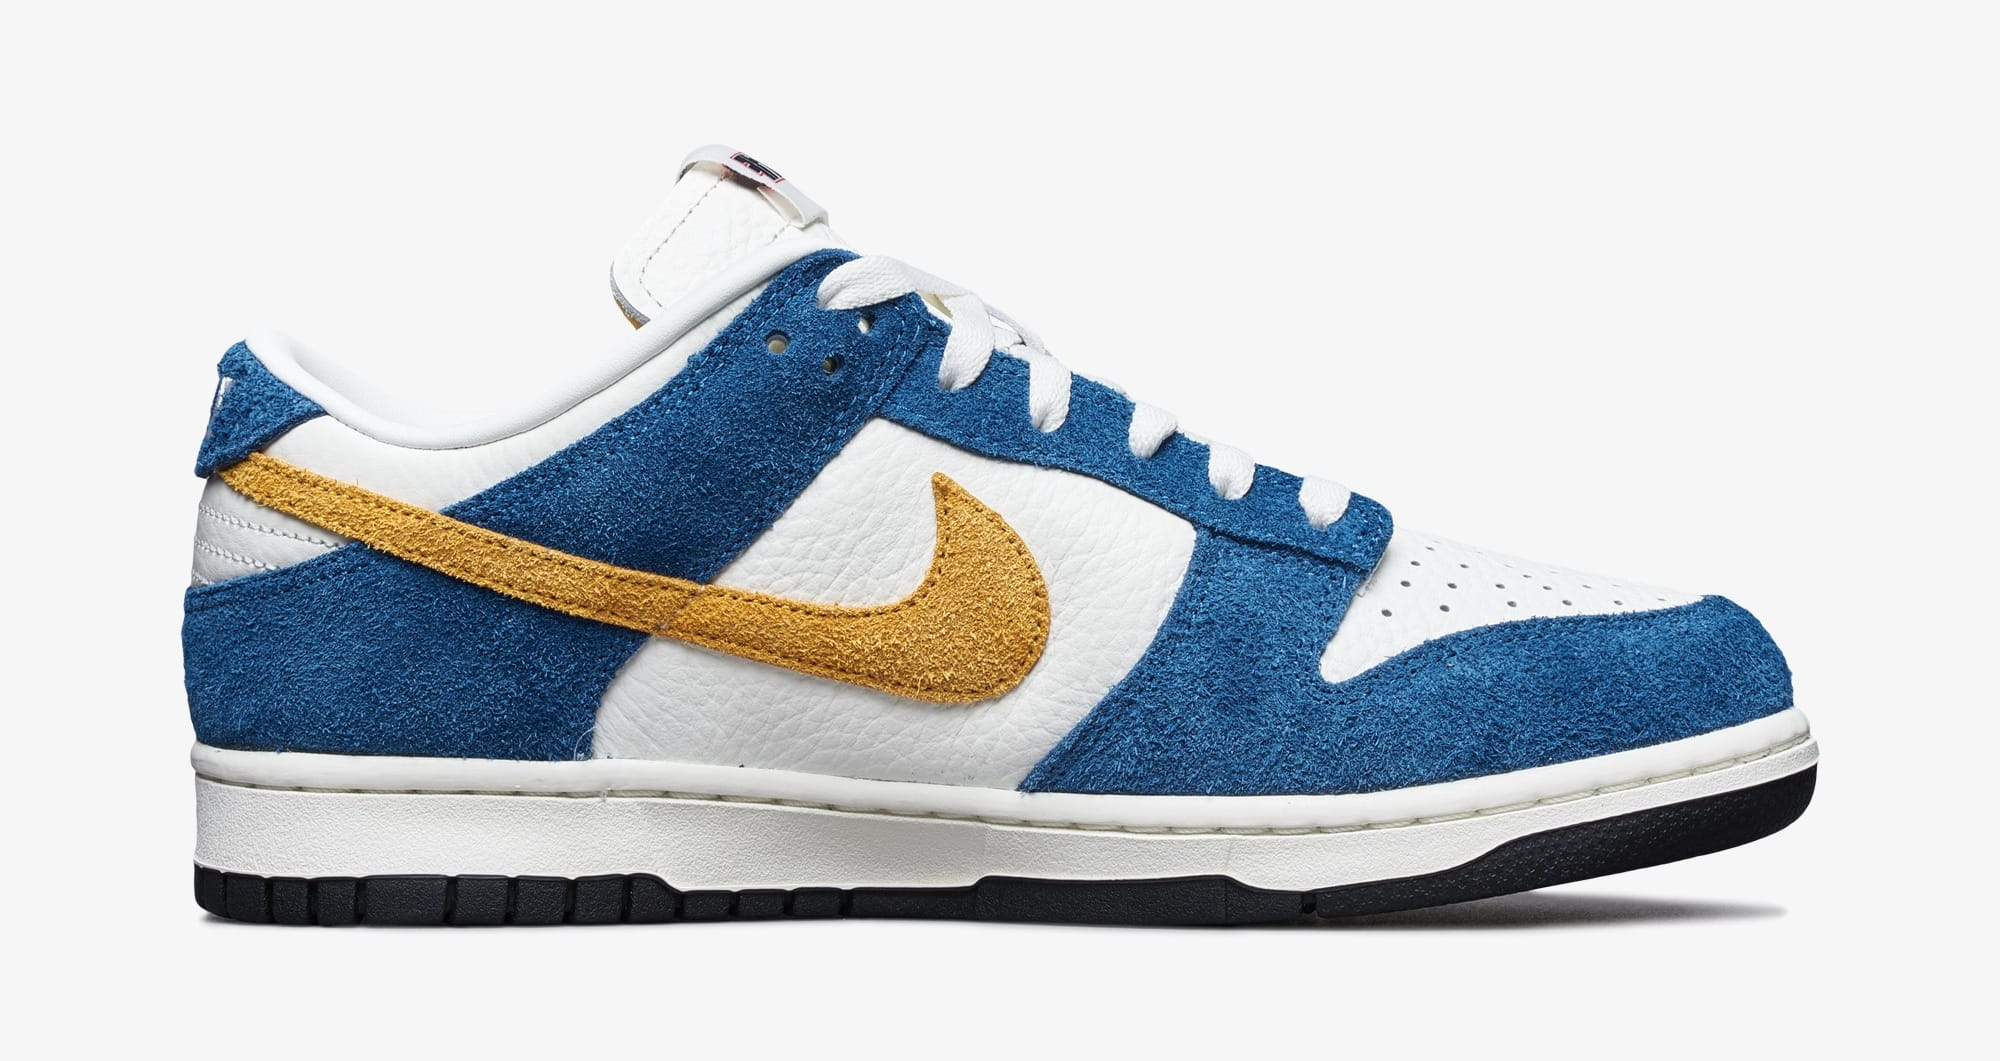 Kasina x Nike Dunk Low 'Industrial Blue' CZ6501-100 Medial